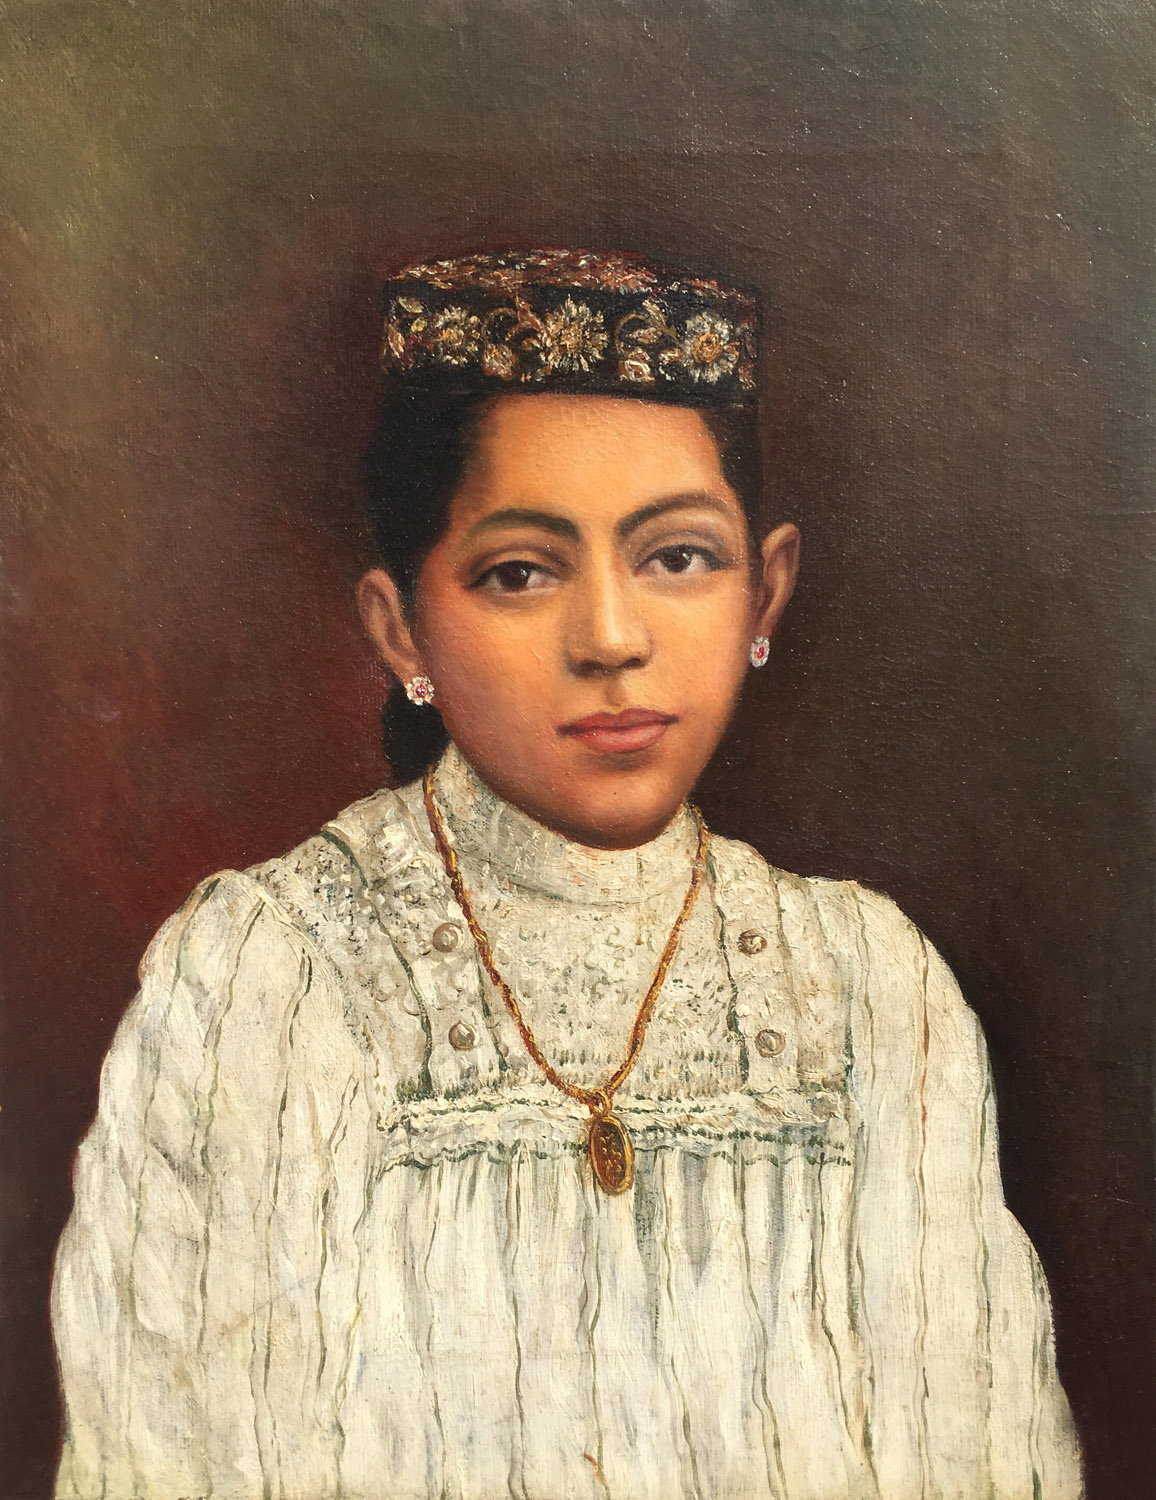 Unidentified Parsi girl